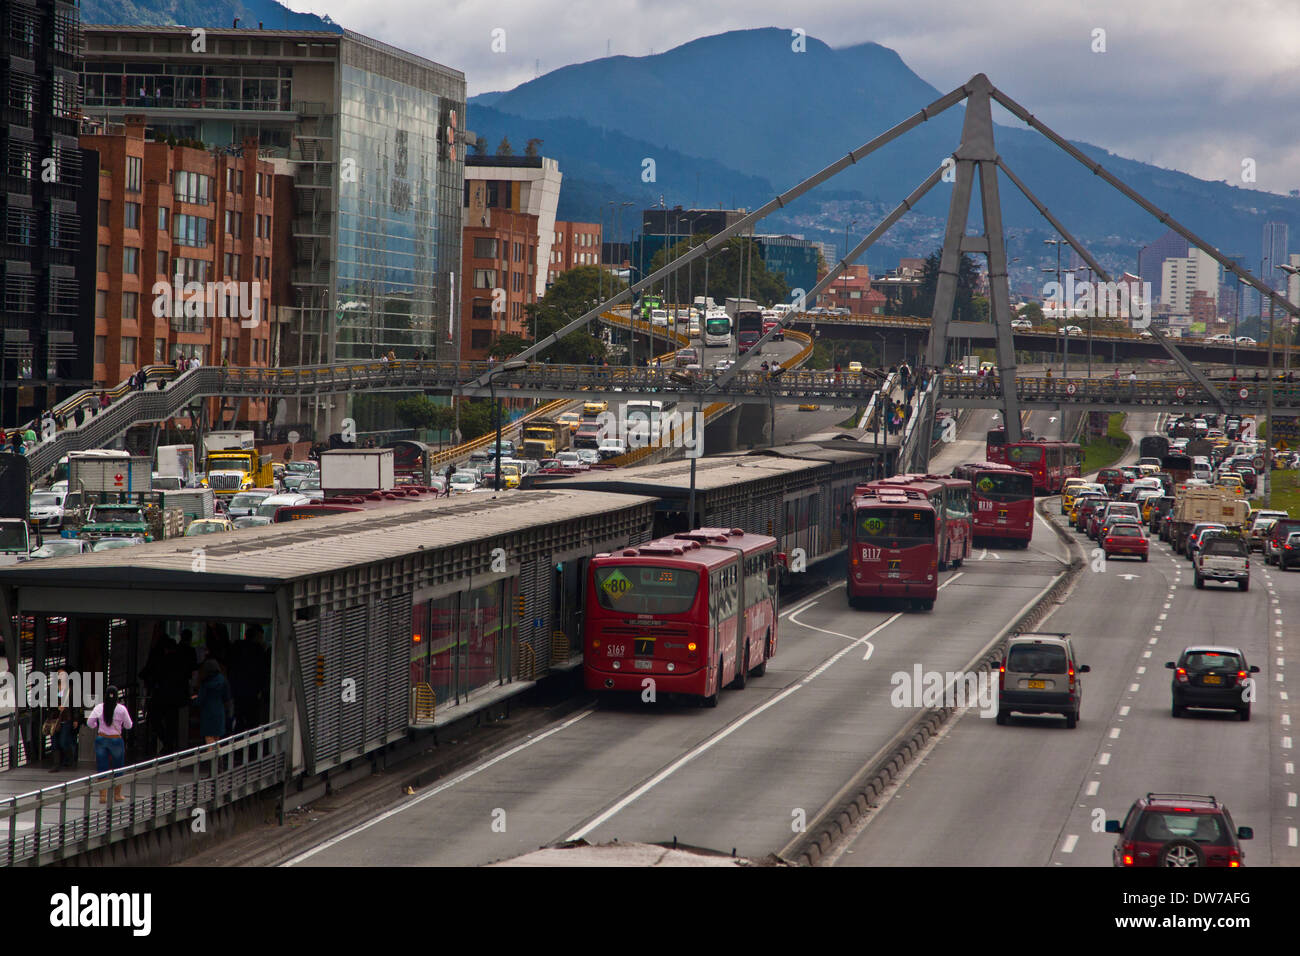 North Bogota, Colombia 100th st transmilenio station afternoon traffic Stock Photo